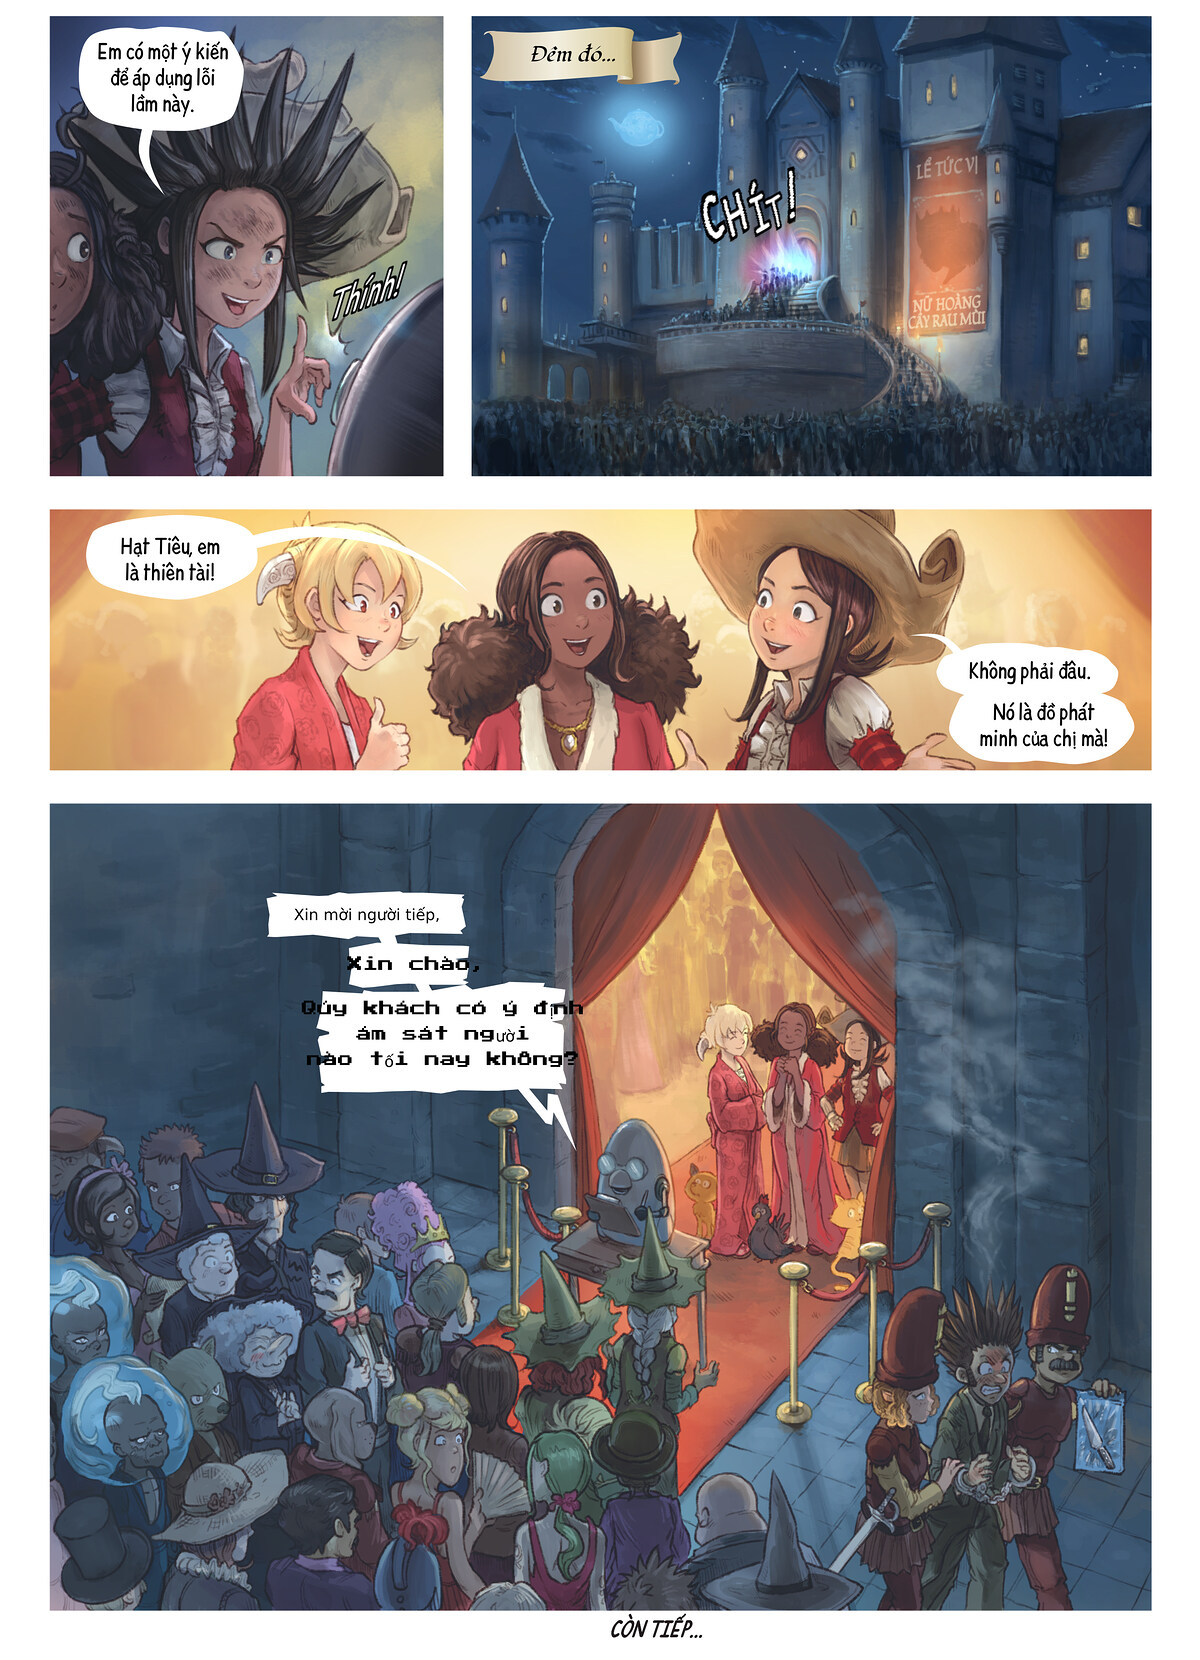 A webcomic page of Pepper&Carrot, Tập 27 [vi], trang 6